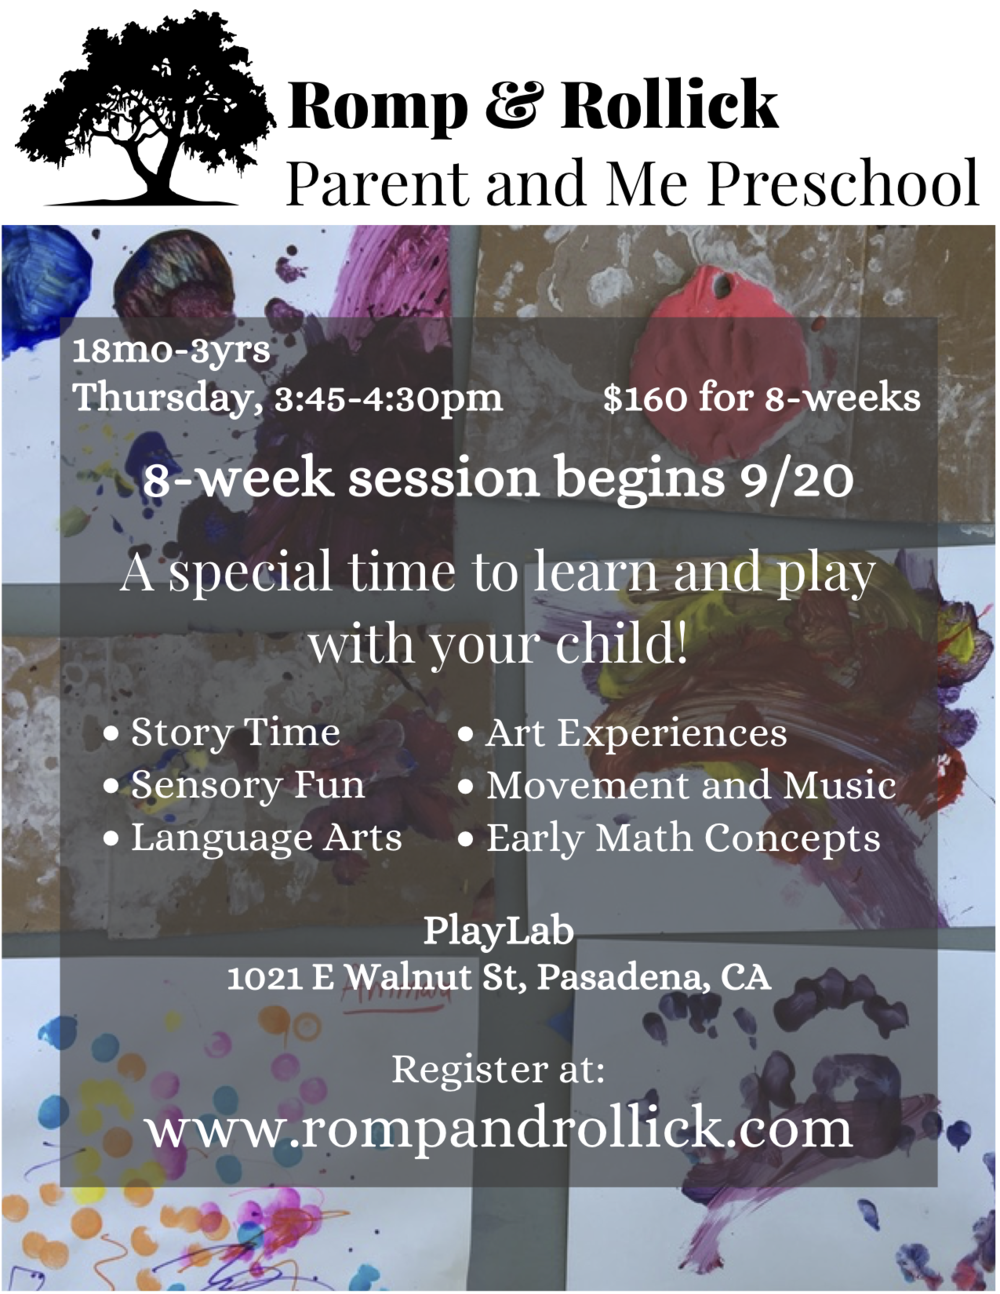 Parent and Me Preschool Flyer no dropin.png